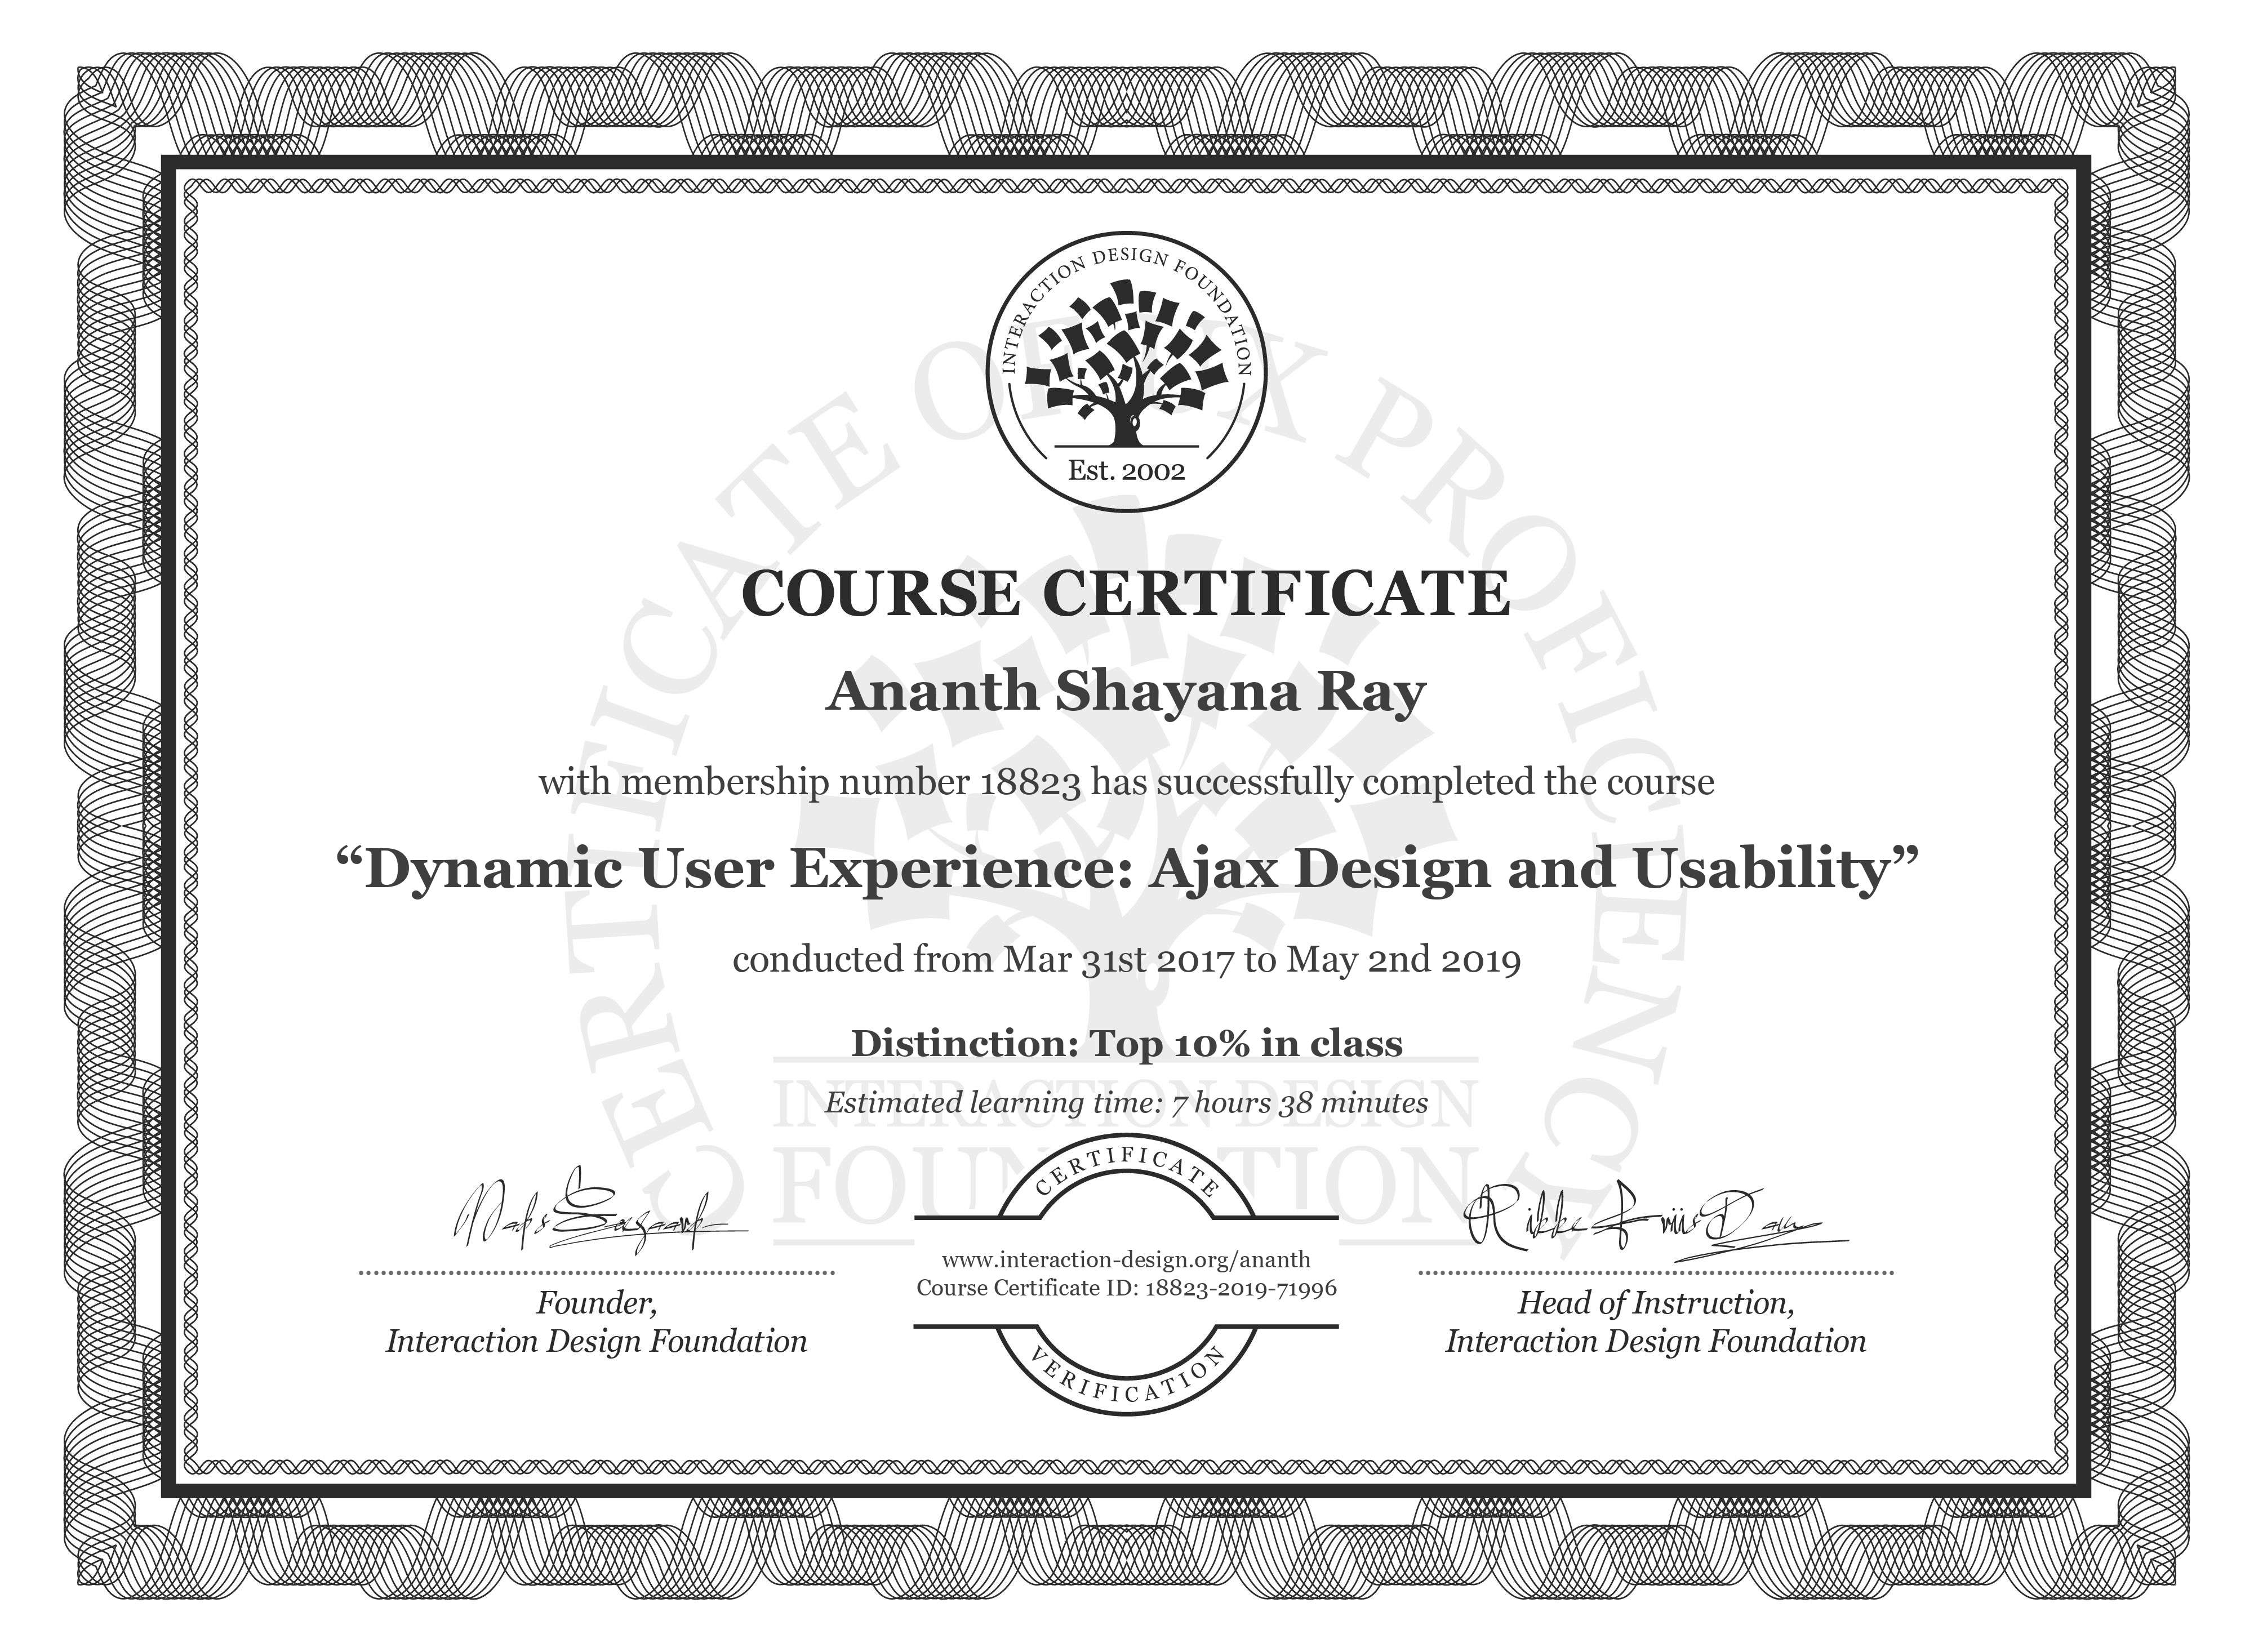 Ananth Shayana Ray: Course Certificate - Dynamic User Experience: Ajax Design and Usability